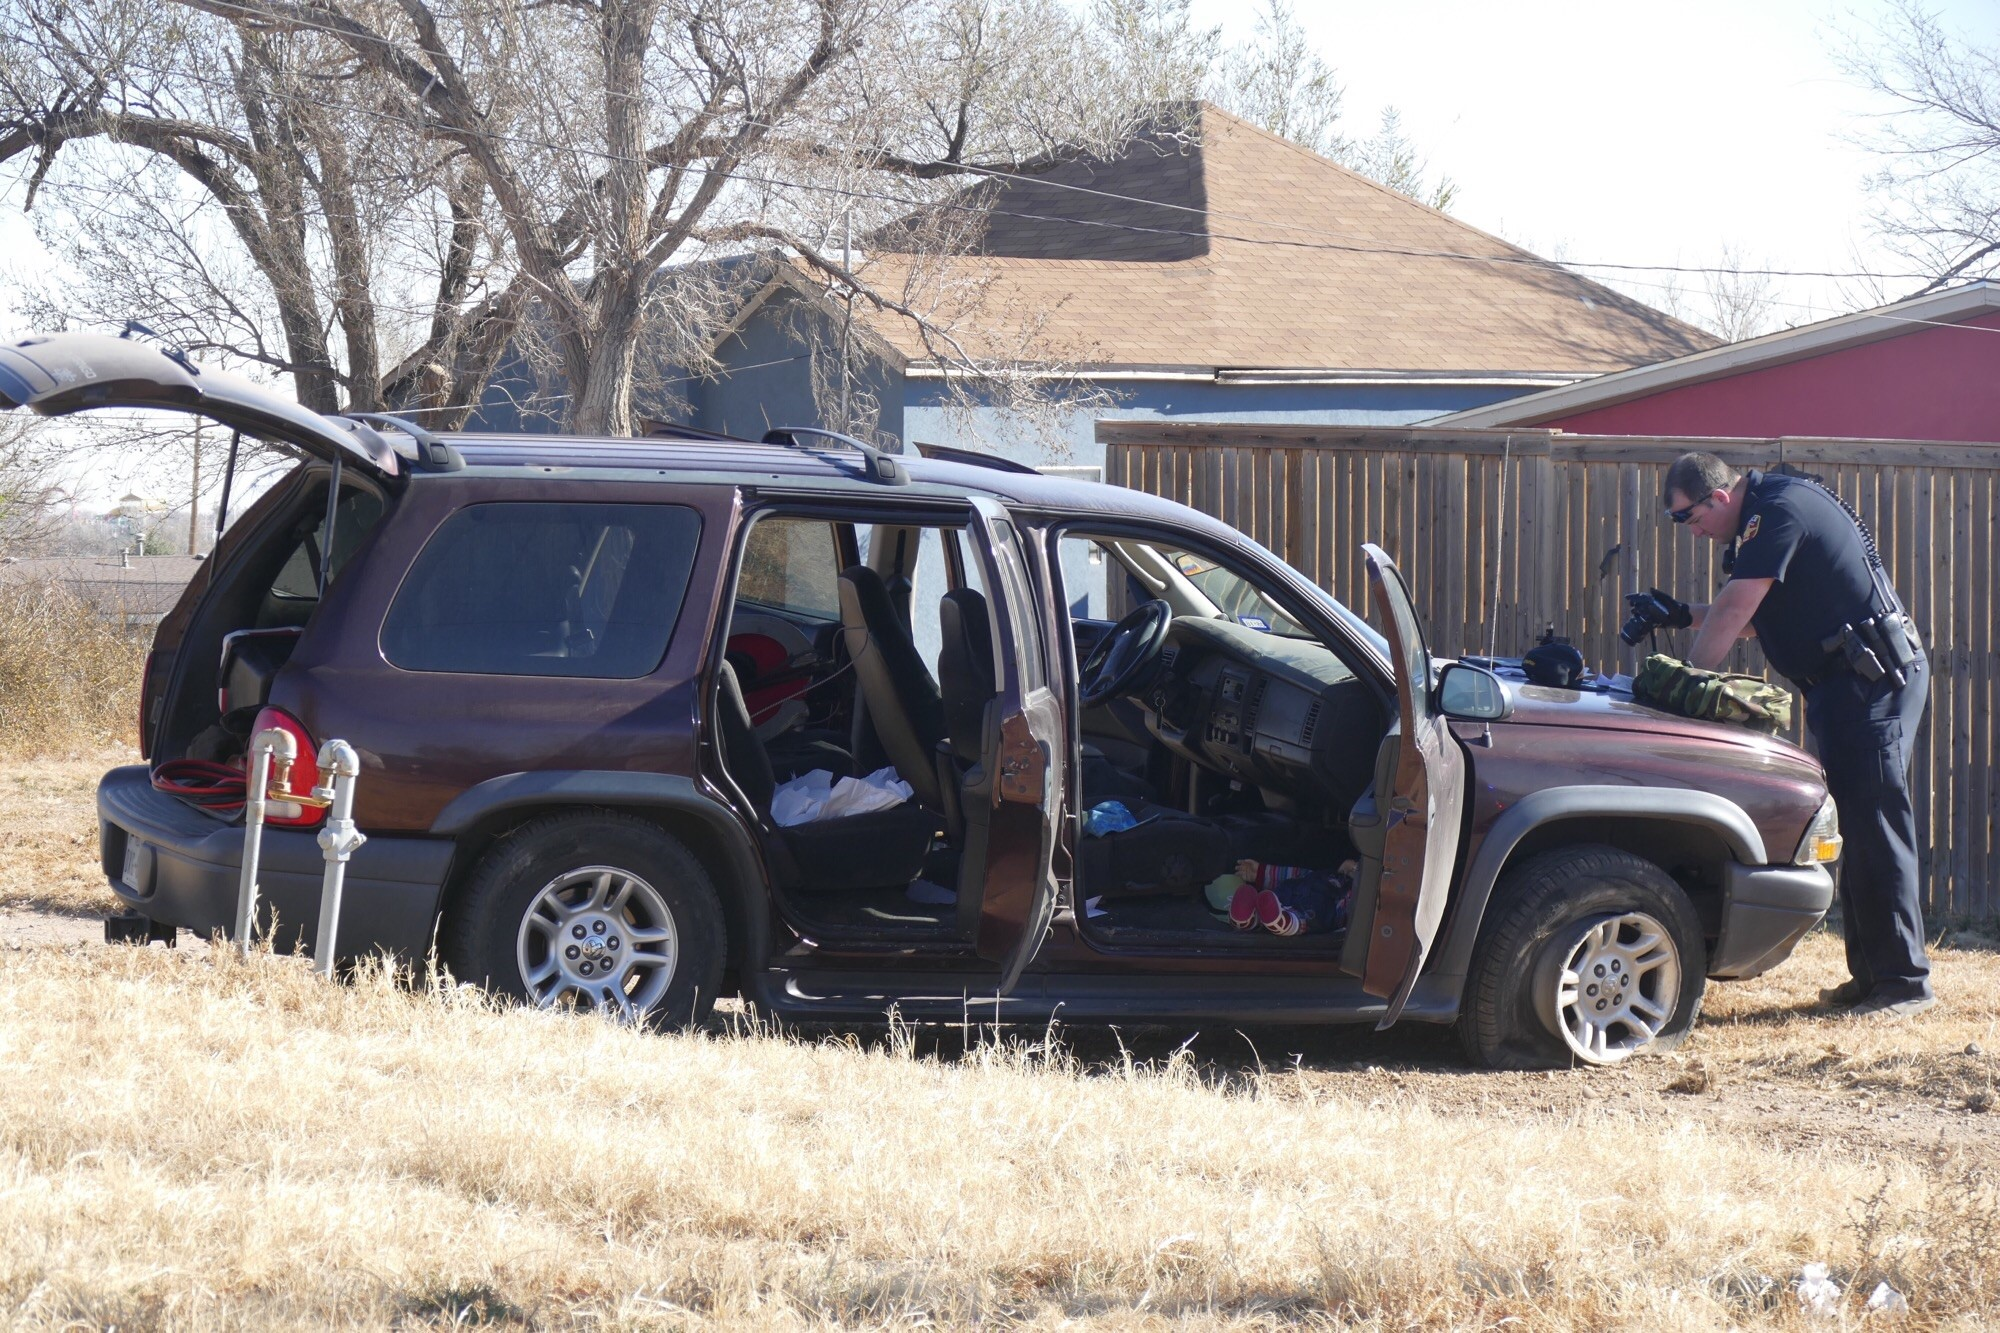 The Amarillo Police Department arrested a man on Monday after spotting a stolen vehicle in Northwest Amarillo. (Photo Courtesy: ABC 7 Amarillo-Steve Douglass)